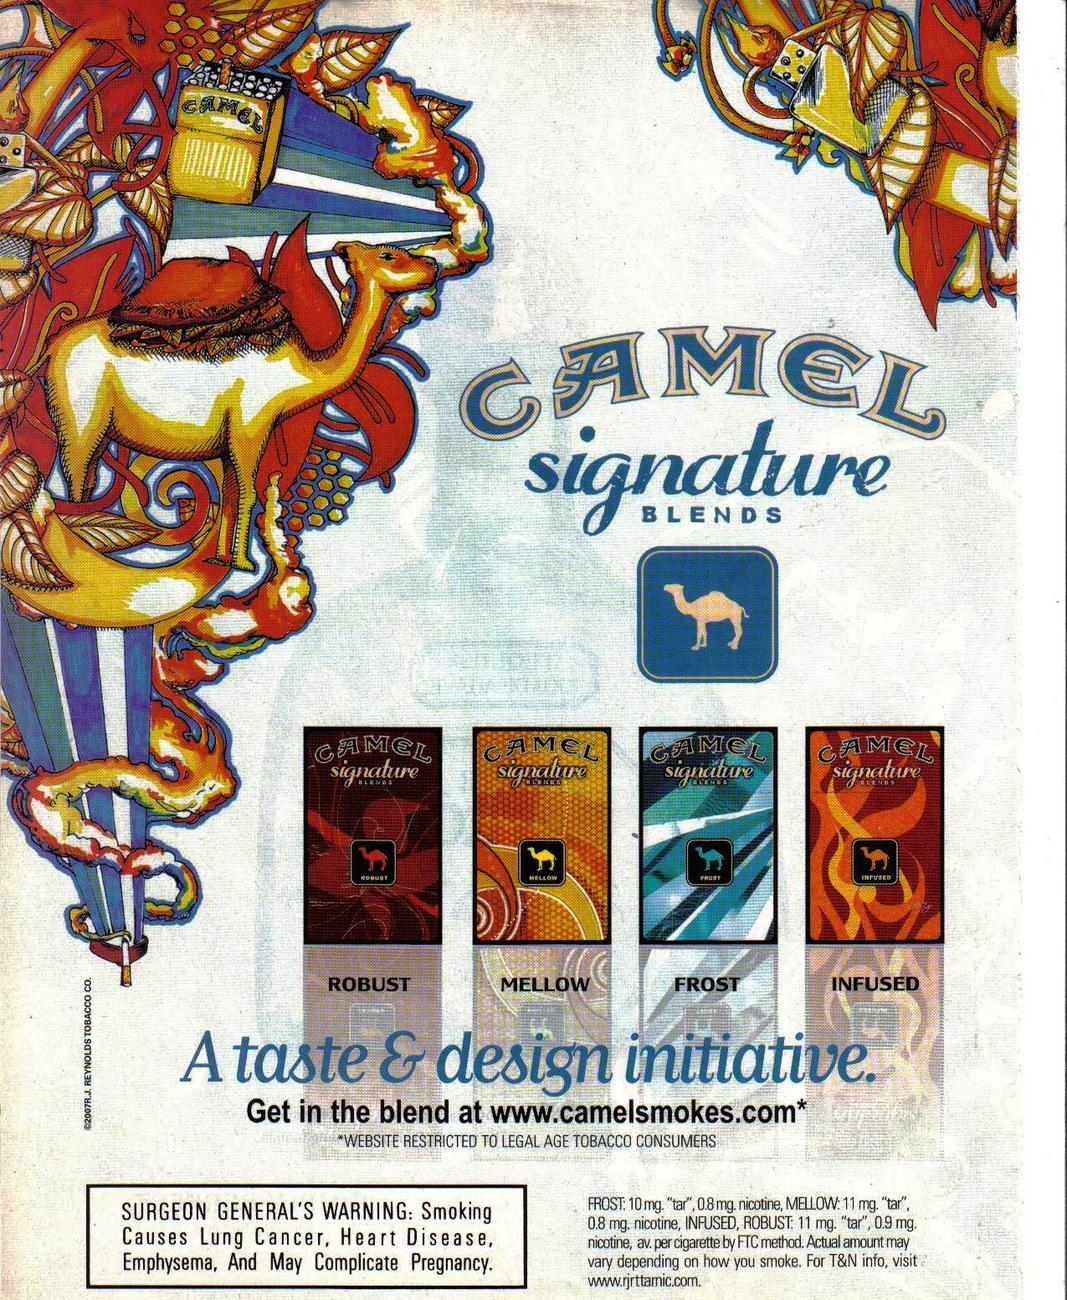 Camel Signature Blends Full Page Original Color Print Ad From 2002 Very Good - $3.50